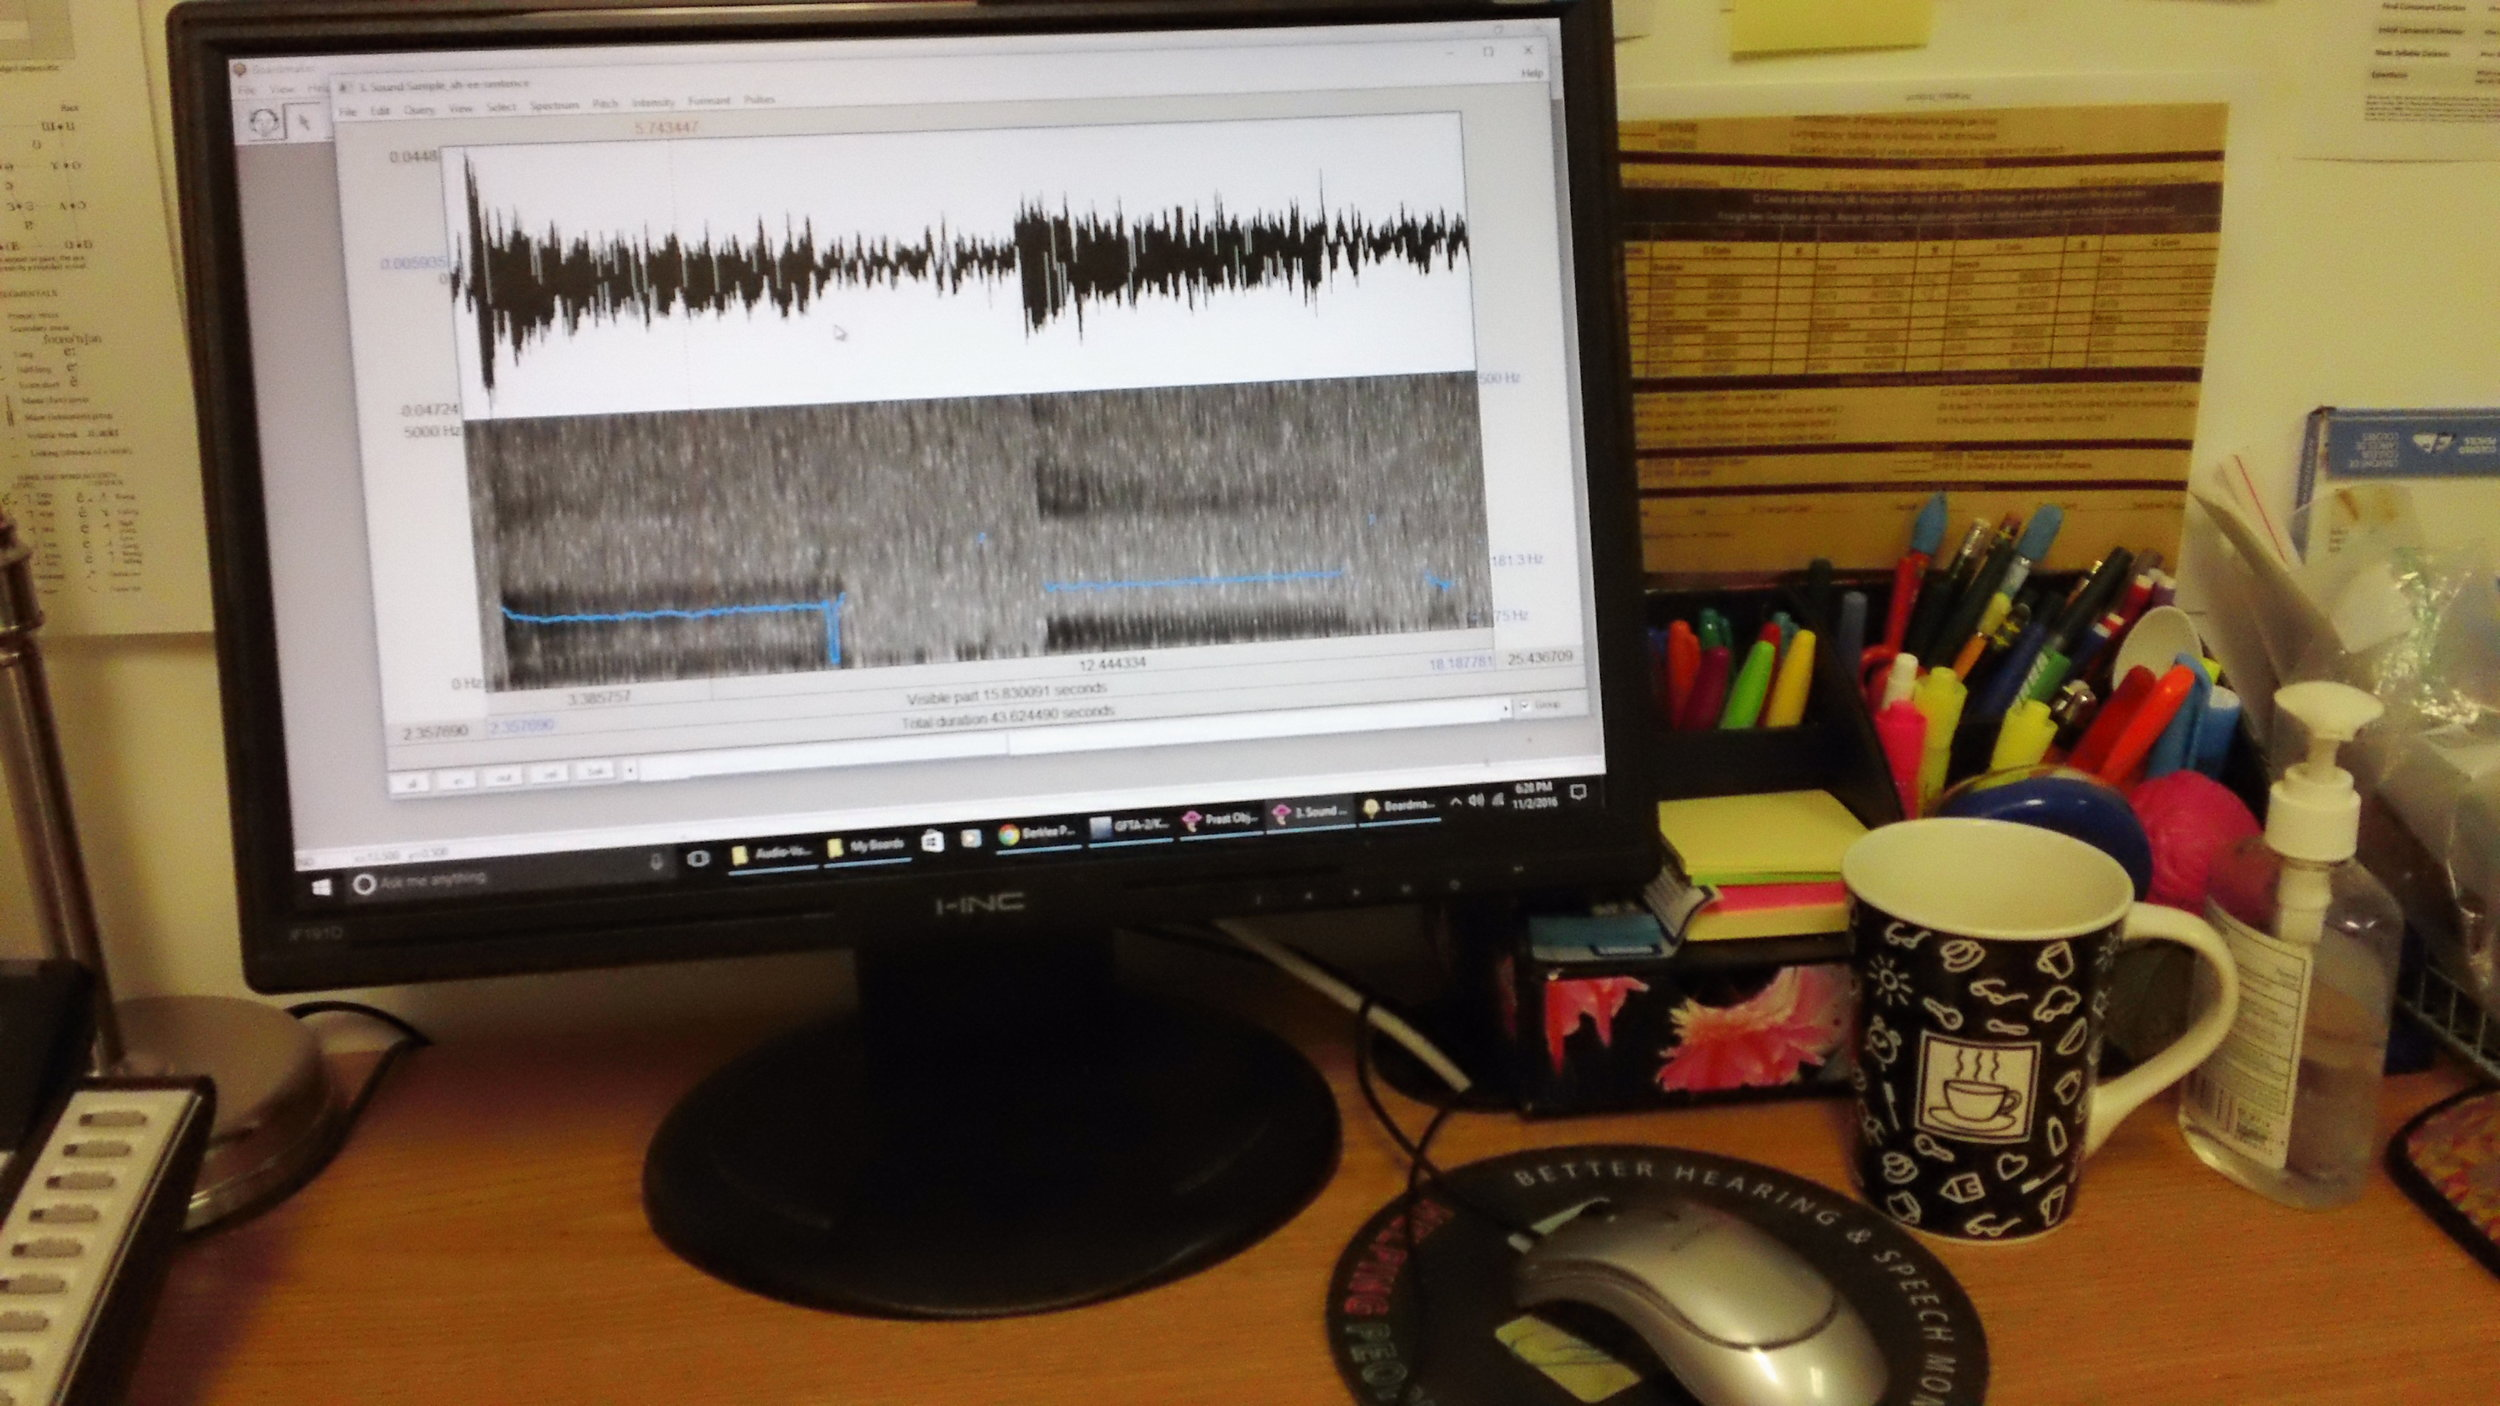 Analysis of the sound of the voice and speech provides critical data for documenting progress.